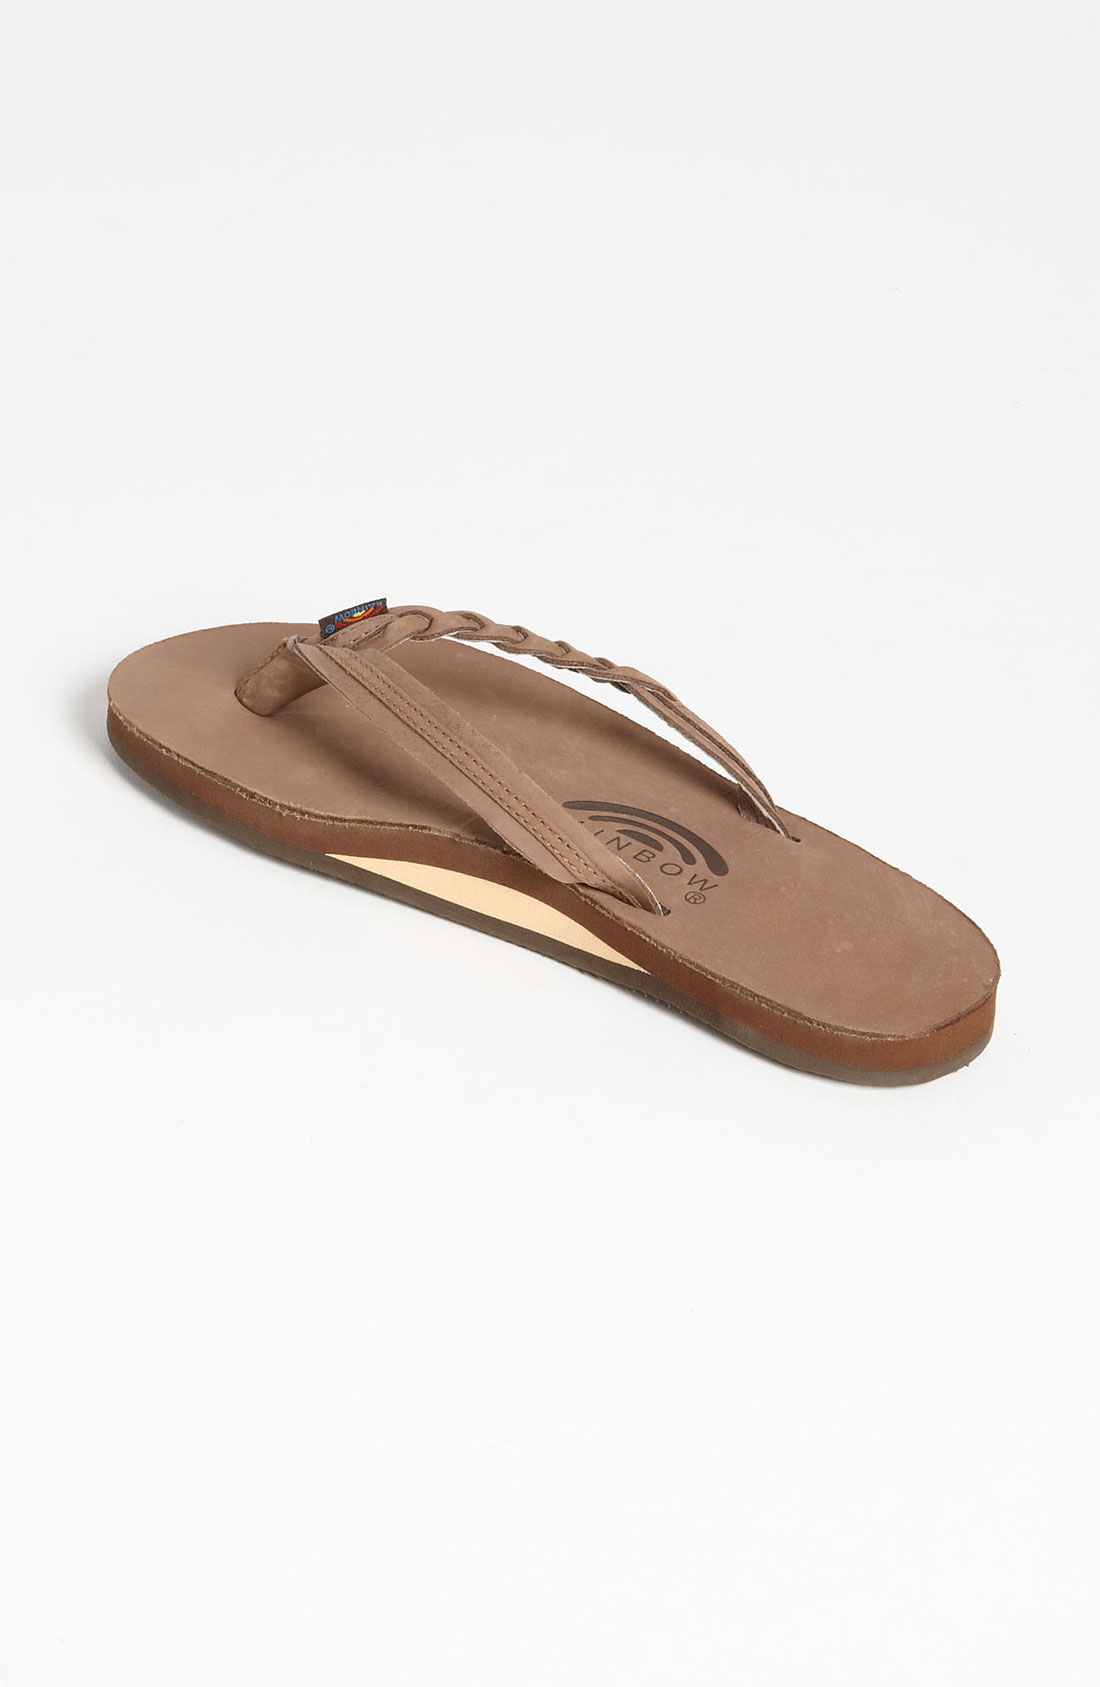 Leather Braided Flip Flops. gravitybox.ga shows fashion collections of current Leather Braided Flip Flops. You could also find more popular women items and recommendation forBoots, as there always a huge selection for allSandalsand matches items. Sincerely hope all our customers enjoy shopping our new arrivalHeelswith good quality and latest fashion styles.